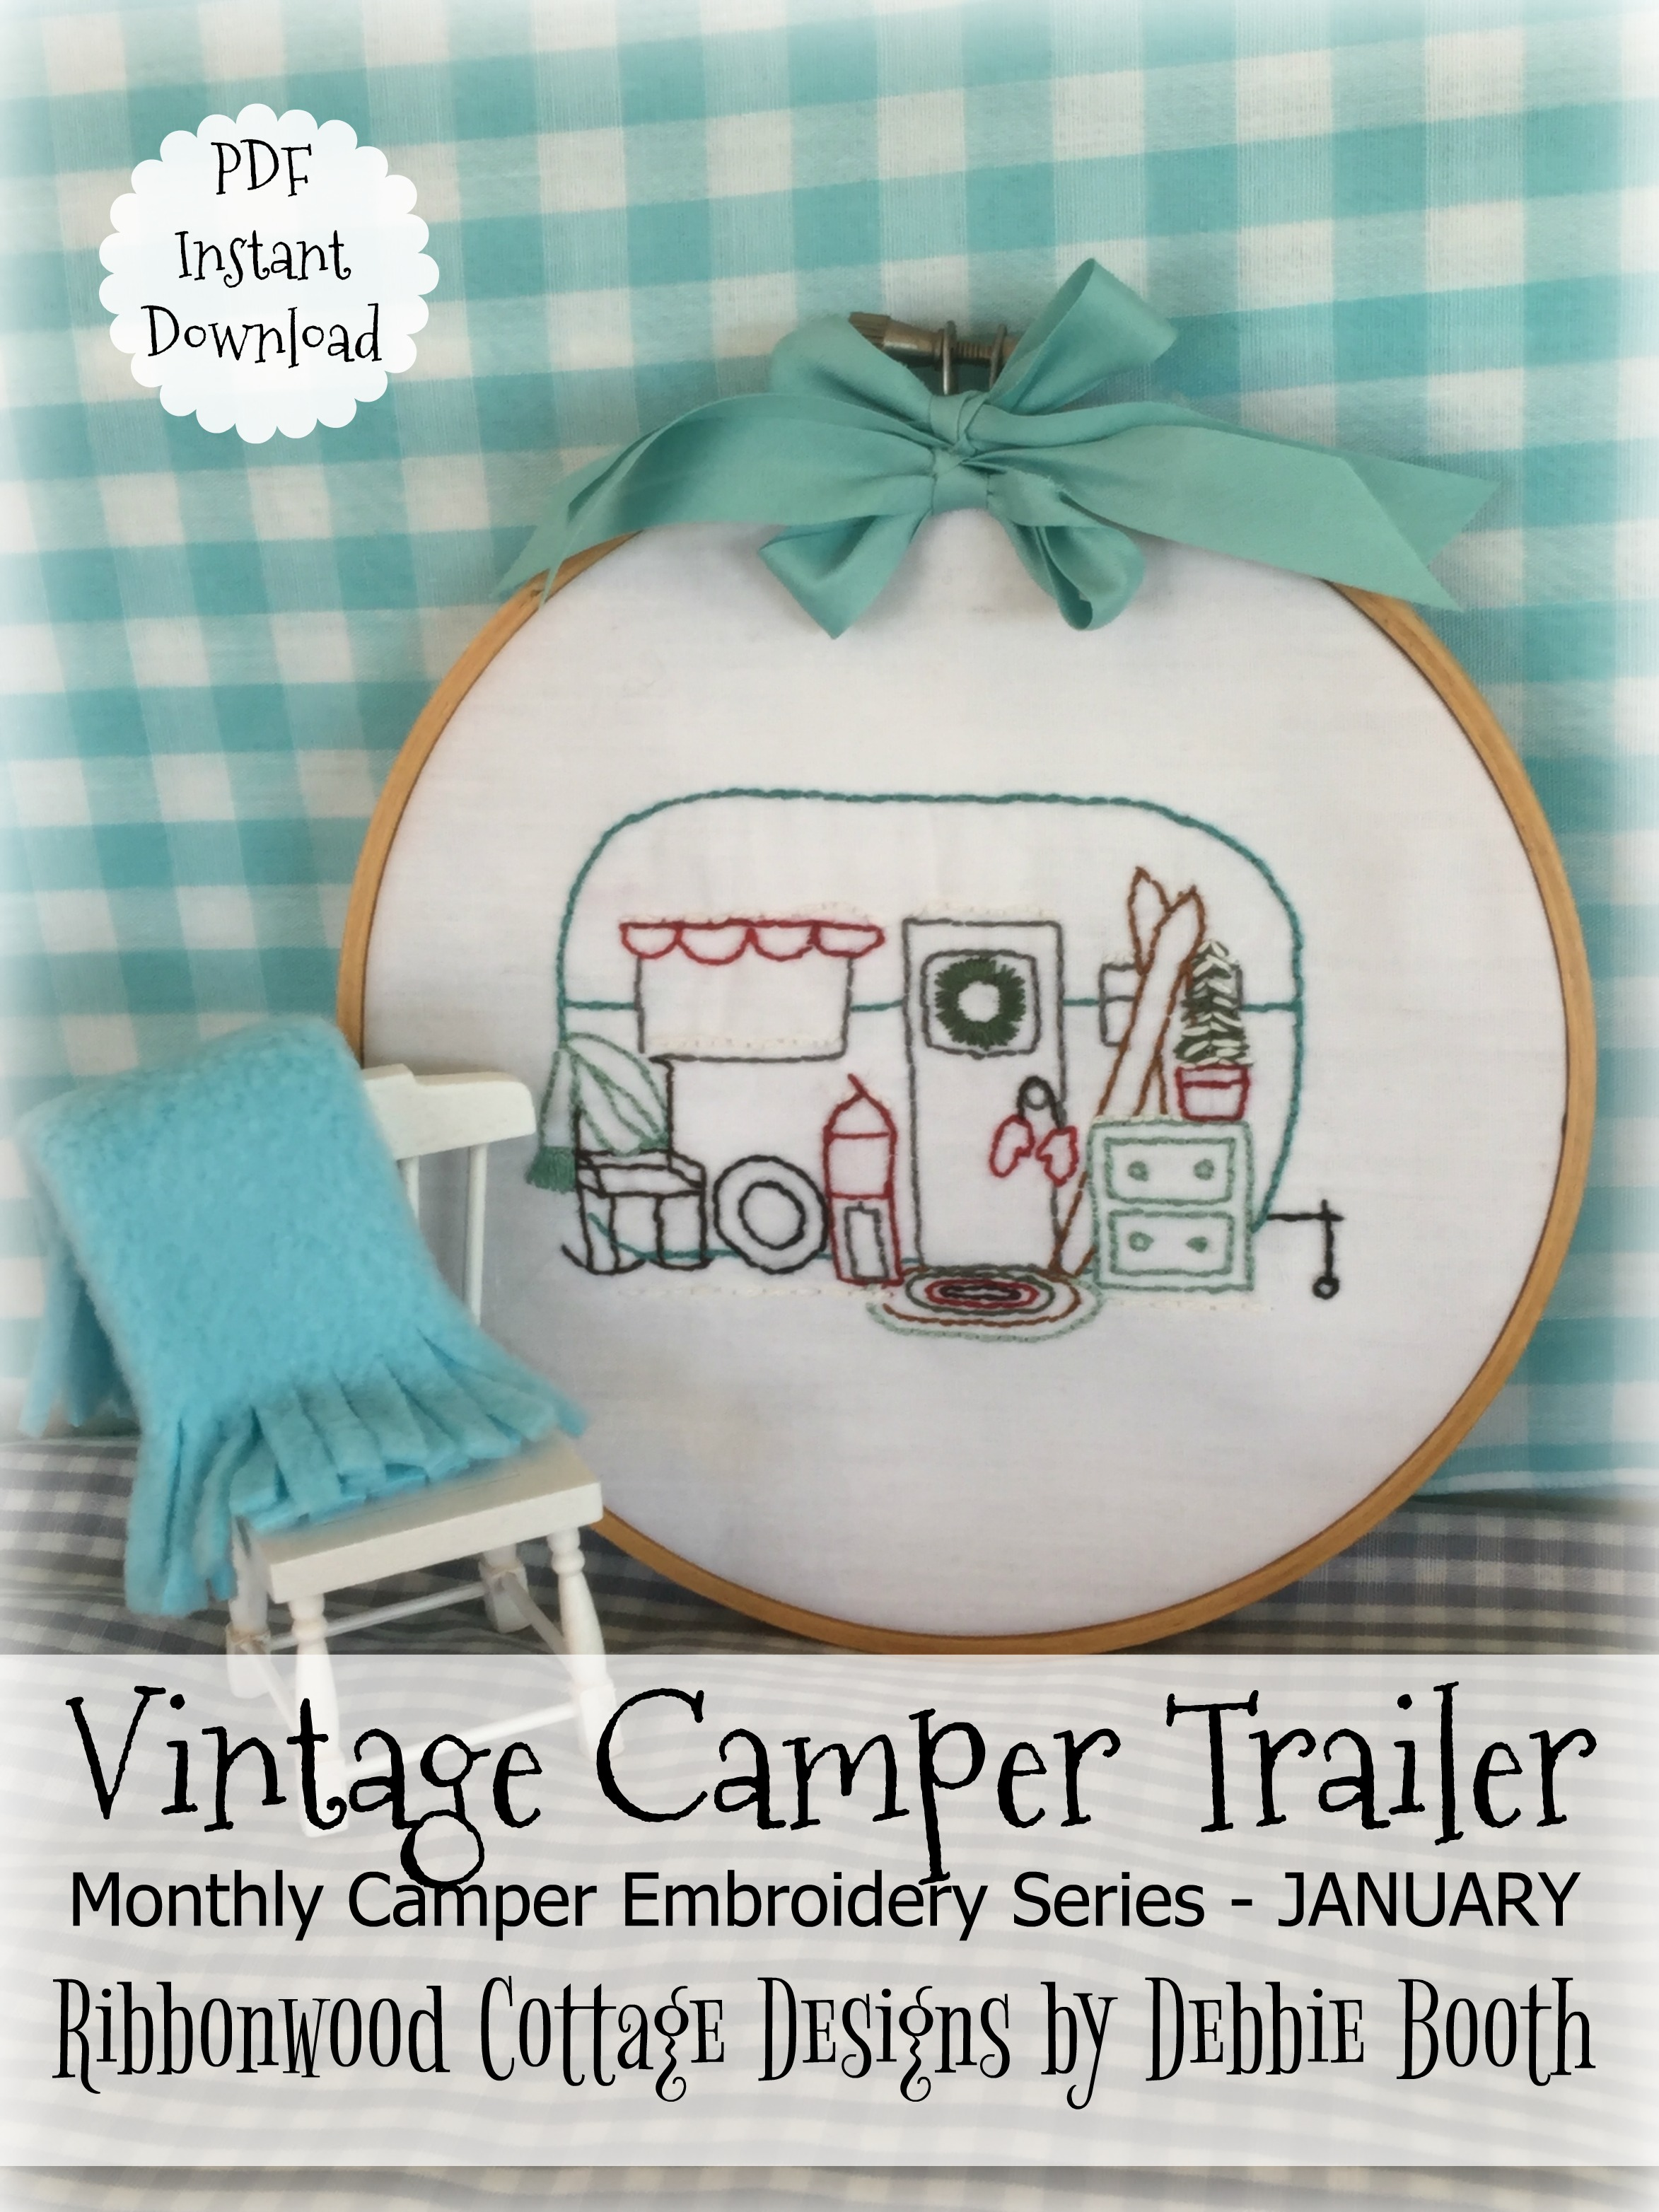 January Vintage Camper Trailer Embroidery - 12 month series